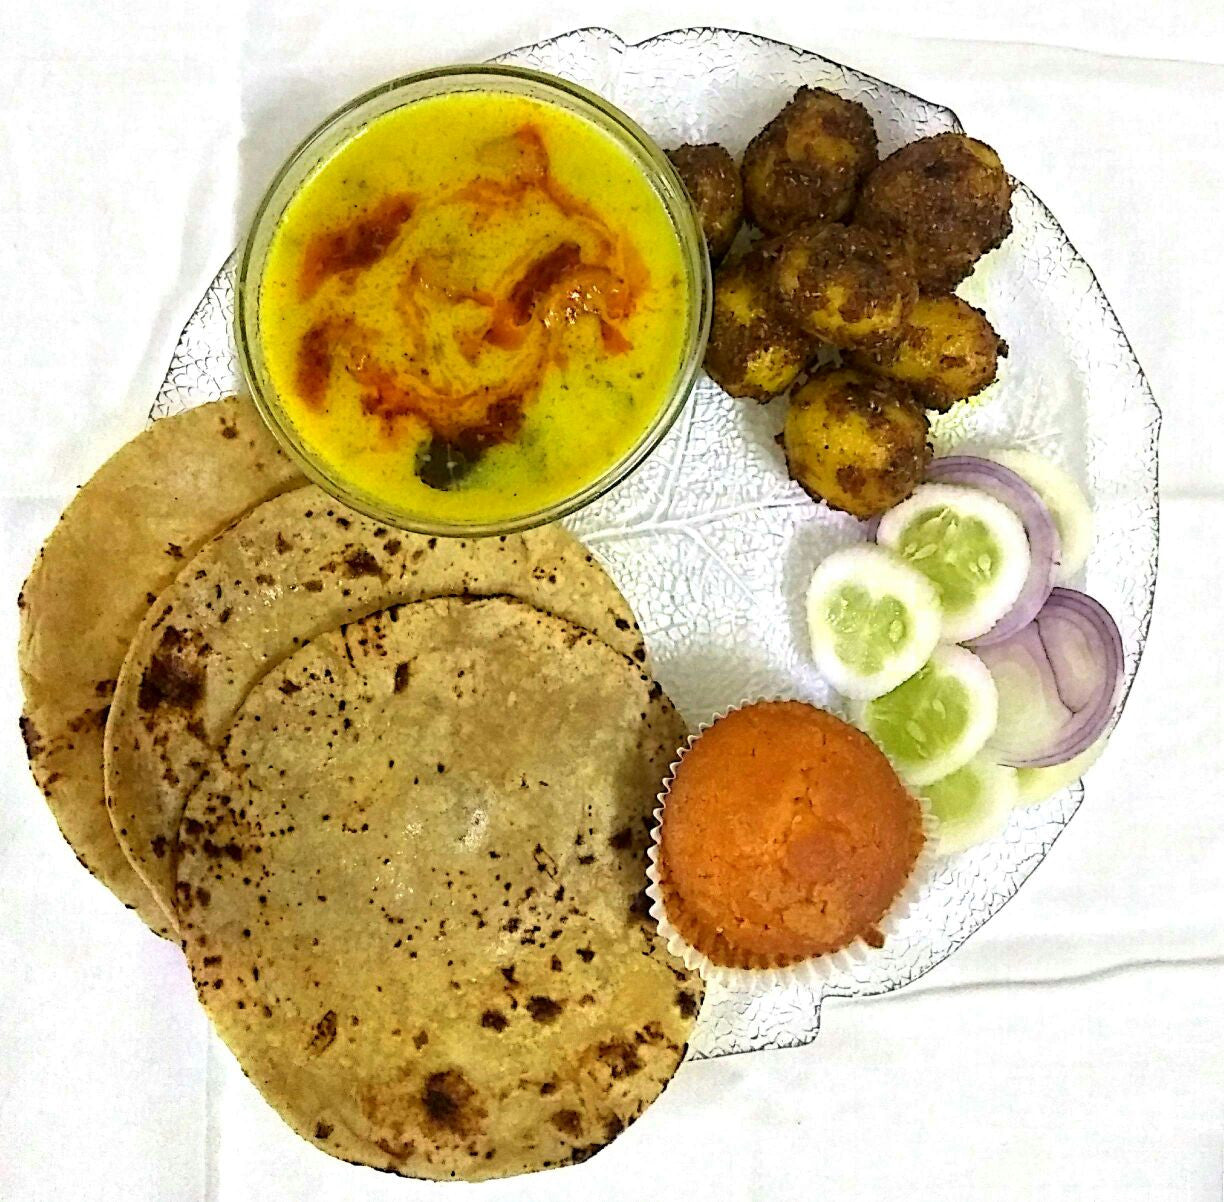 Rajasthani Gatta Curry, Dum Aloo Masaledar with Butter Roti (3 Pieces), Salad & Veg Muffin